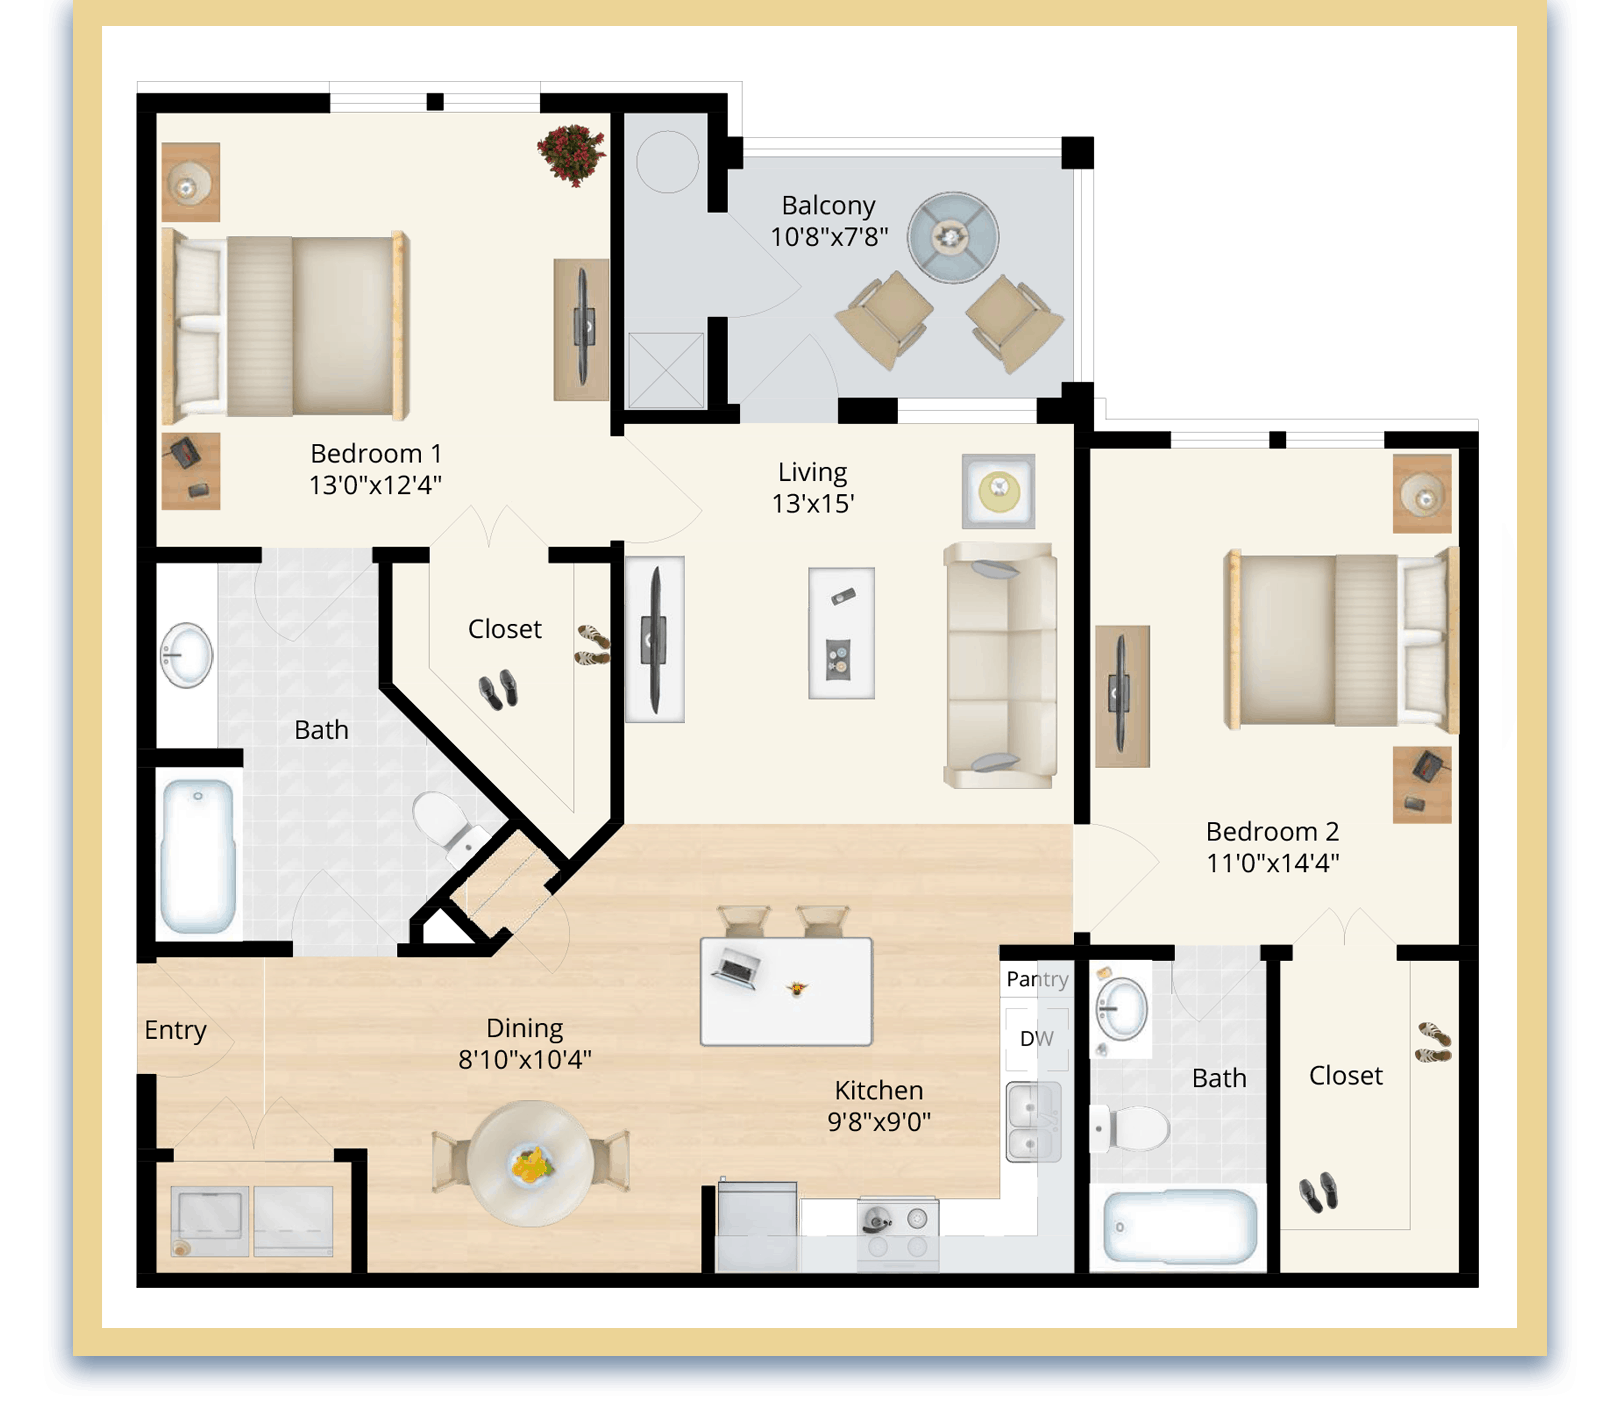 two bedroom apartments charles county